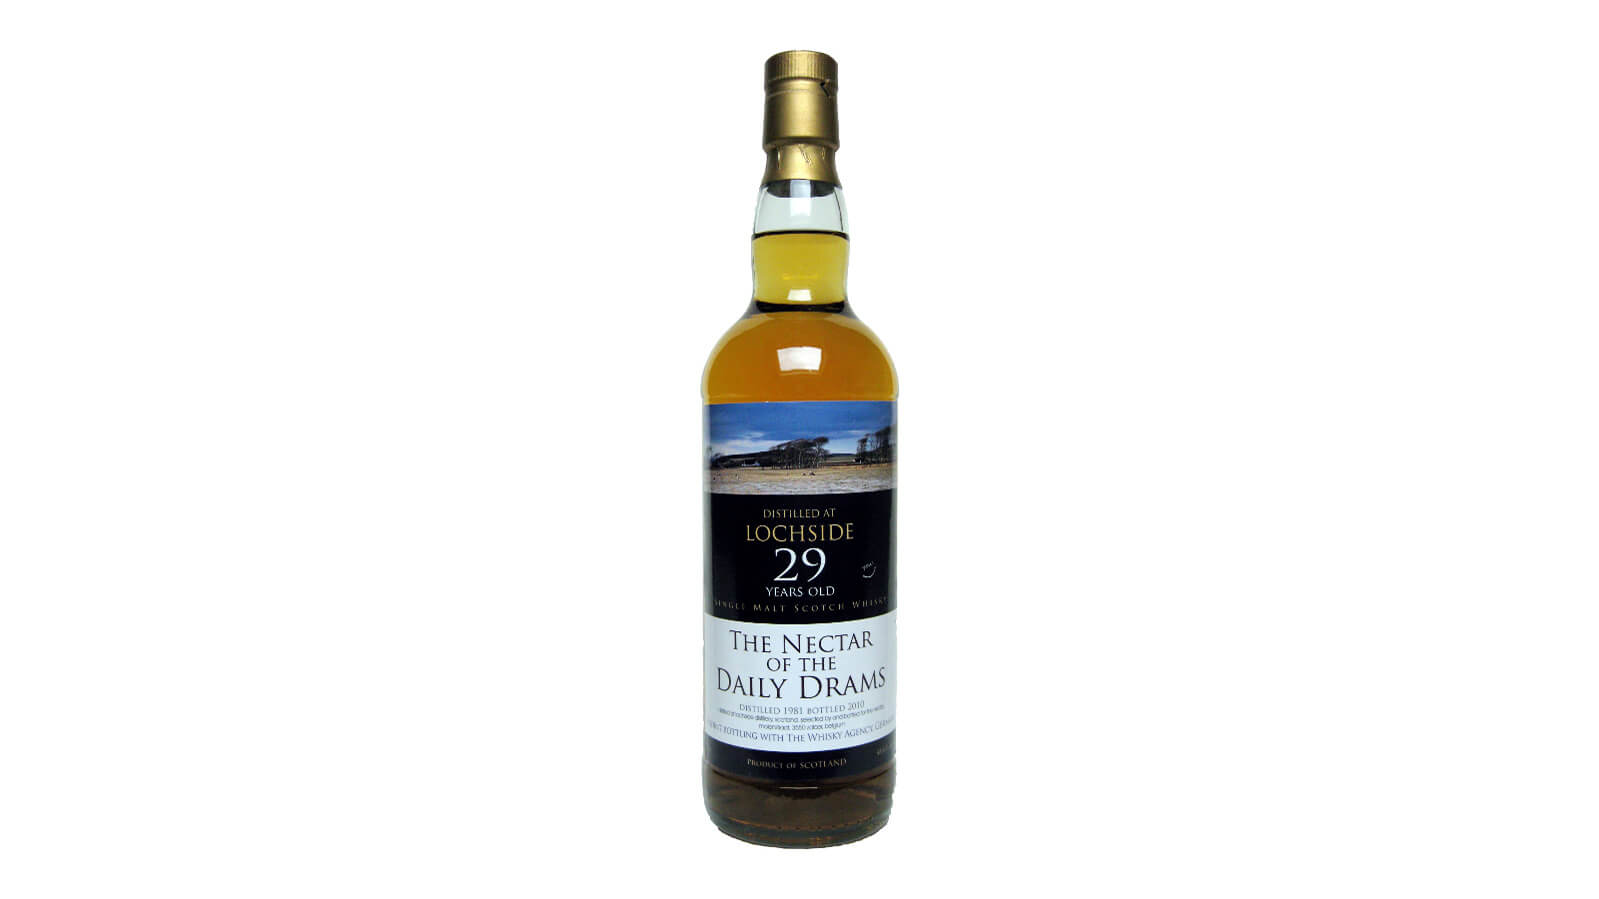 Lochside 1981 The Nectar of Daily Drams